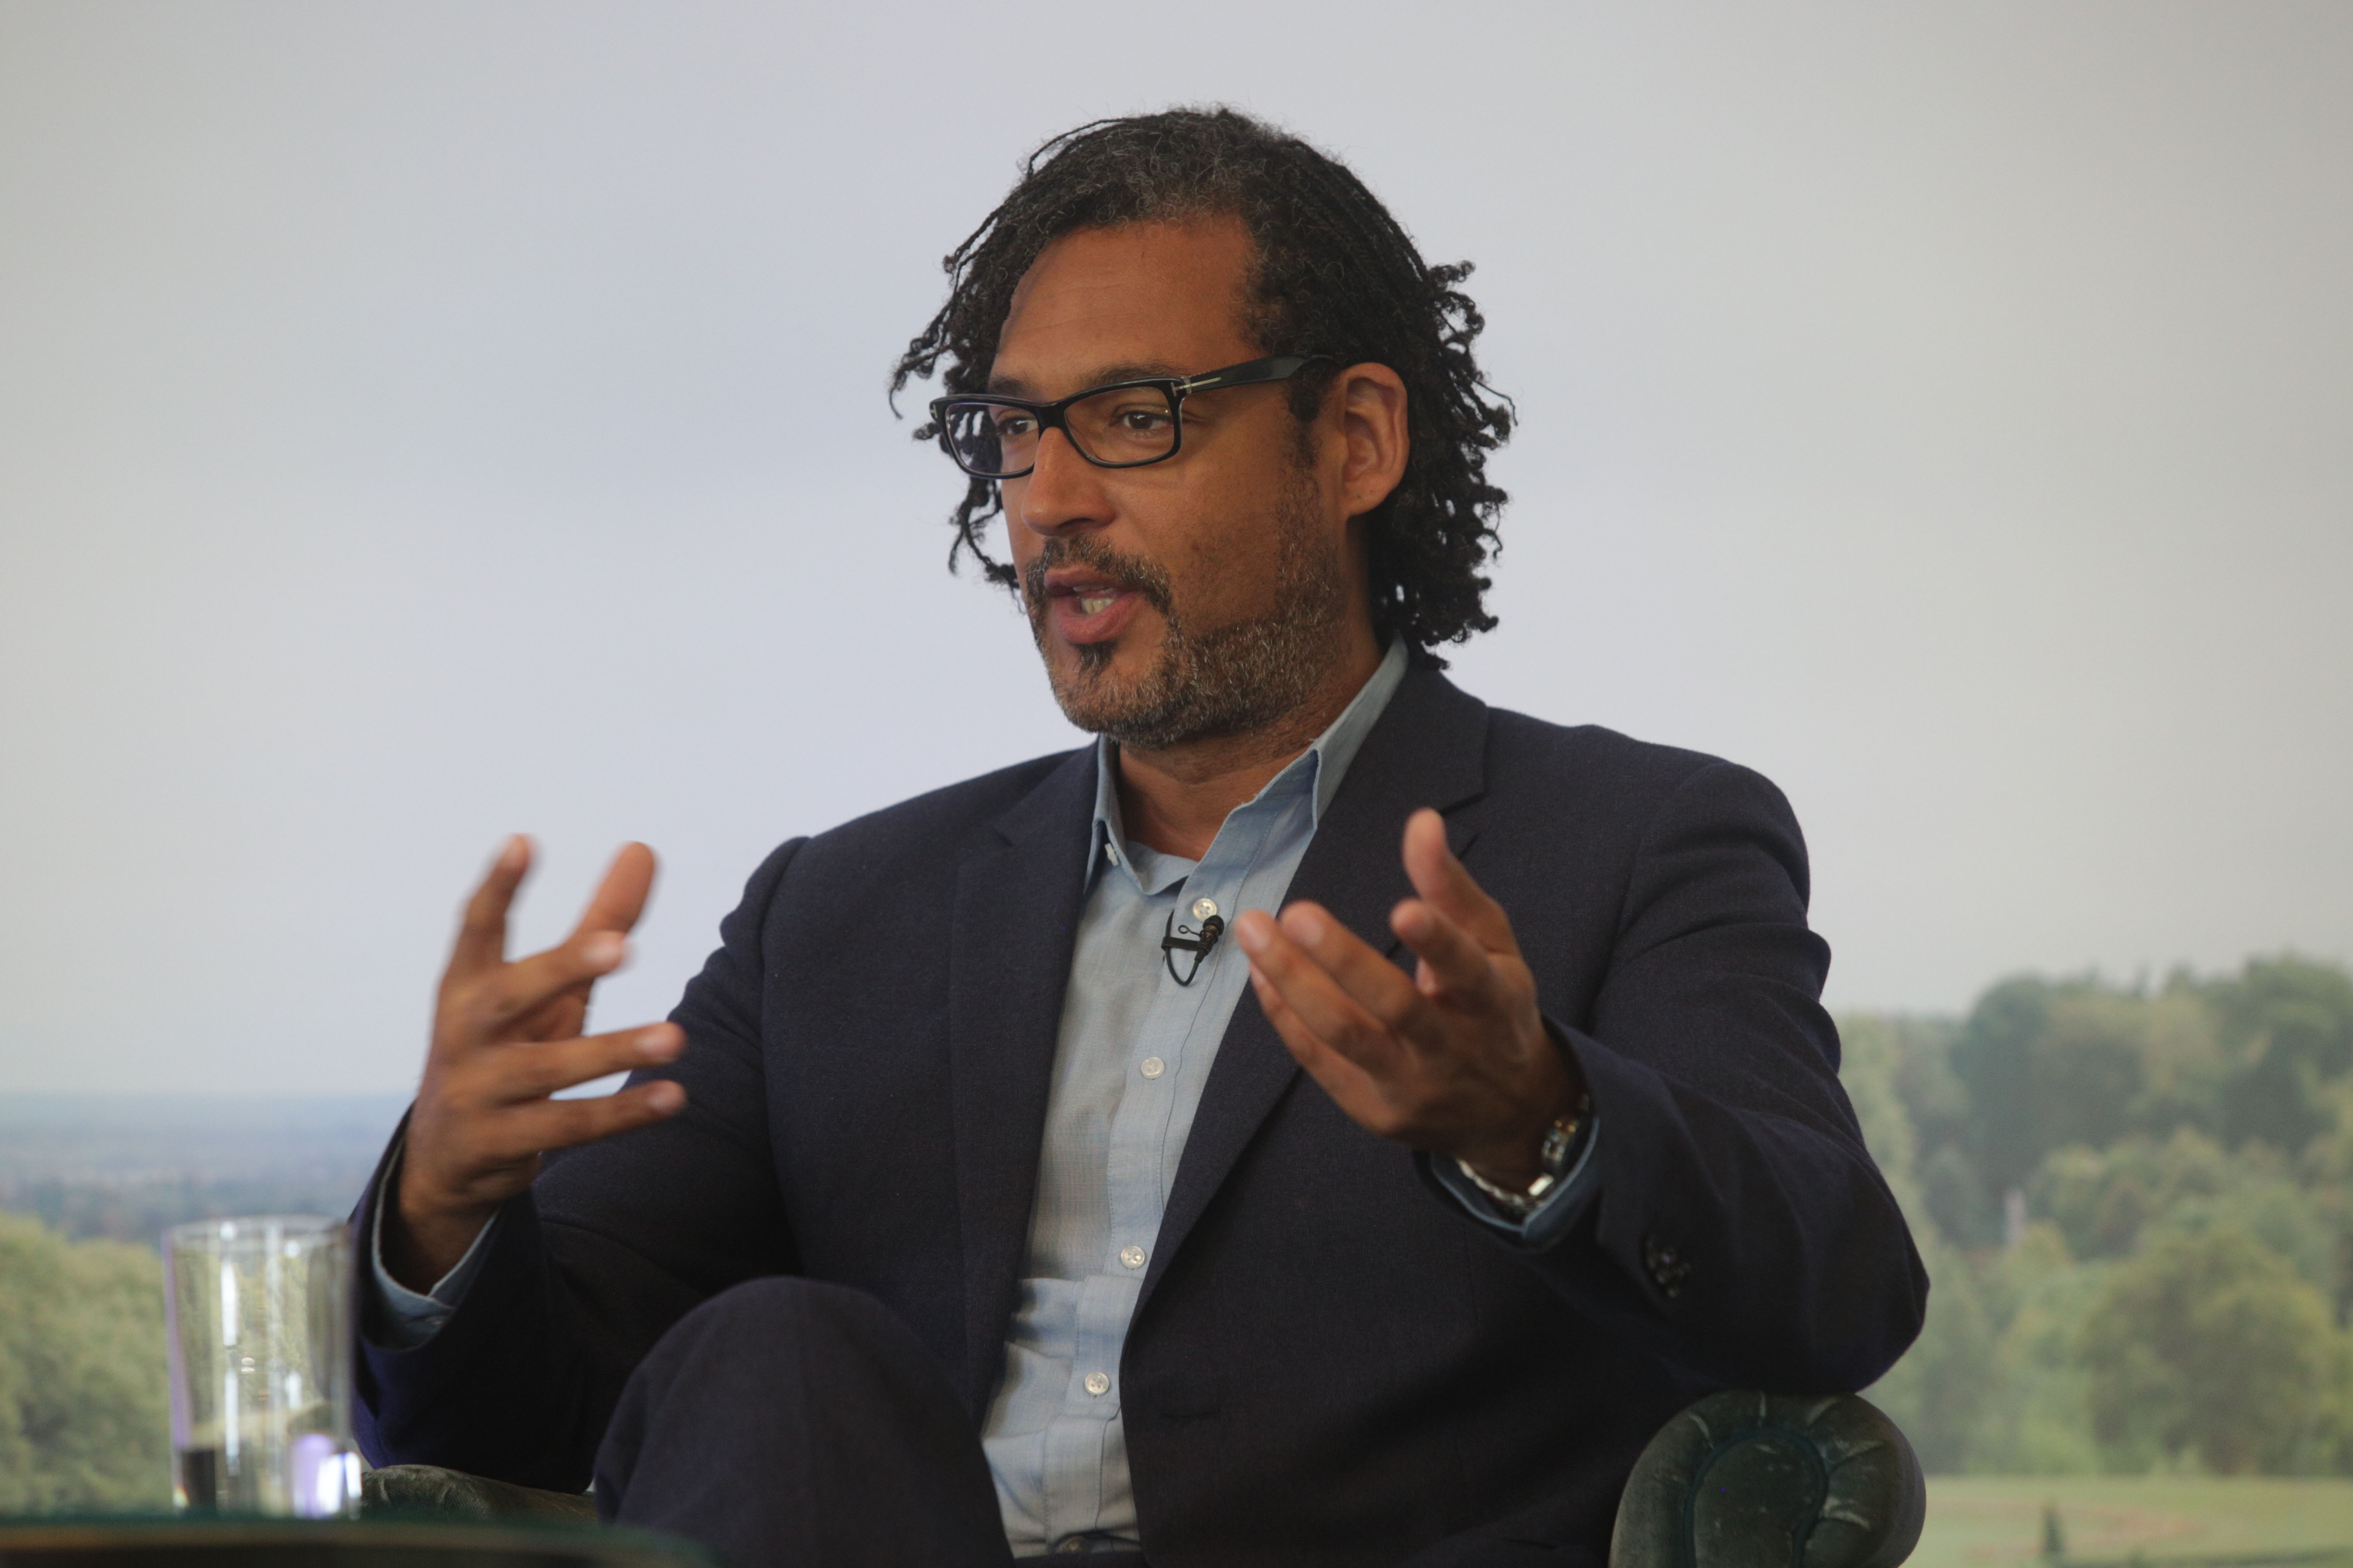 David Olusoga on The Arts Club Stage at Cliveden Literary Festival